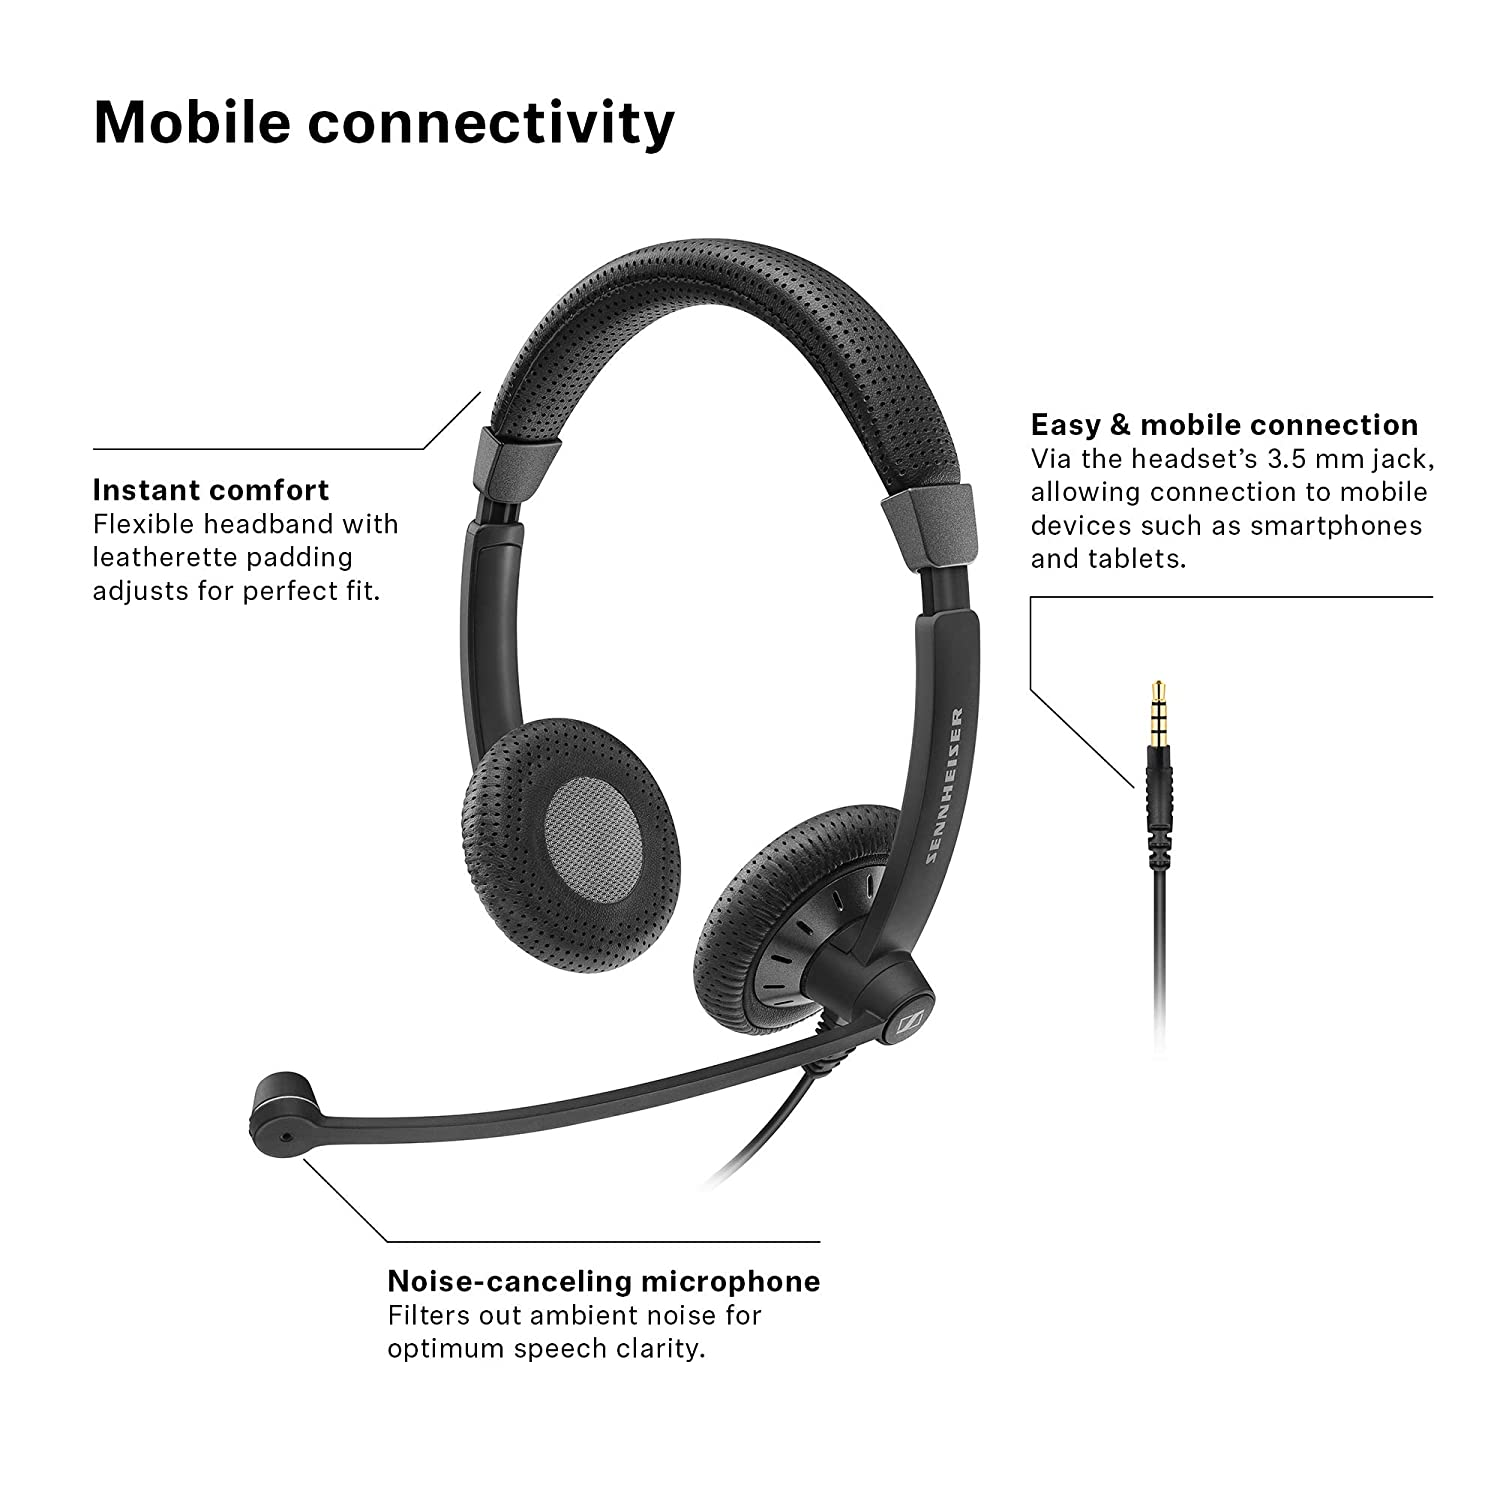 48a07672276 Amazon.com: Sennheiser SC 75 (507085) - Double-Sided Business Headset | For  Mobile Phone and Tablet | with HD Sound & Noise-Cancelling Microphone  (Black): ...